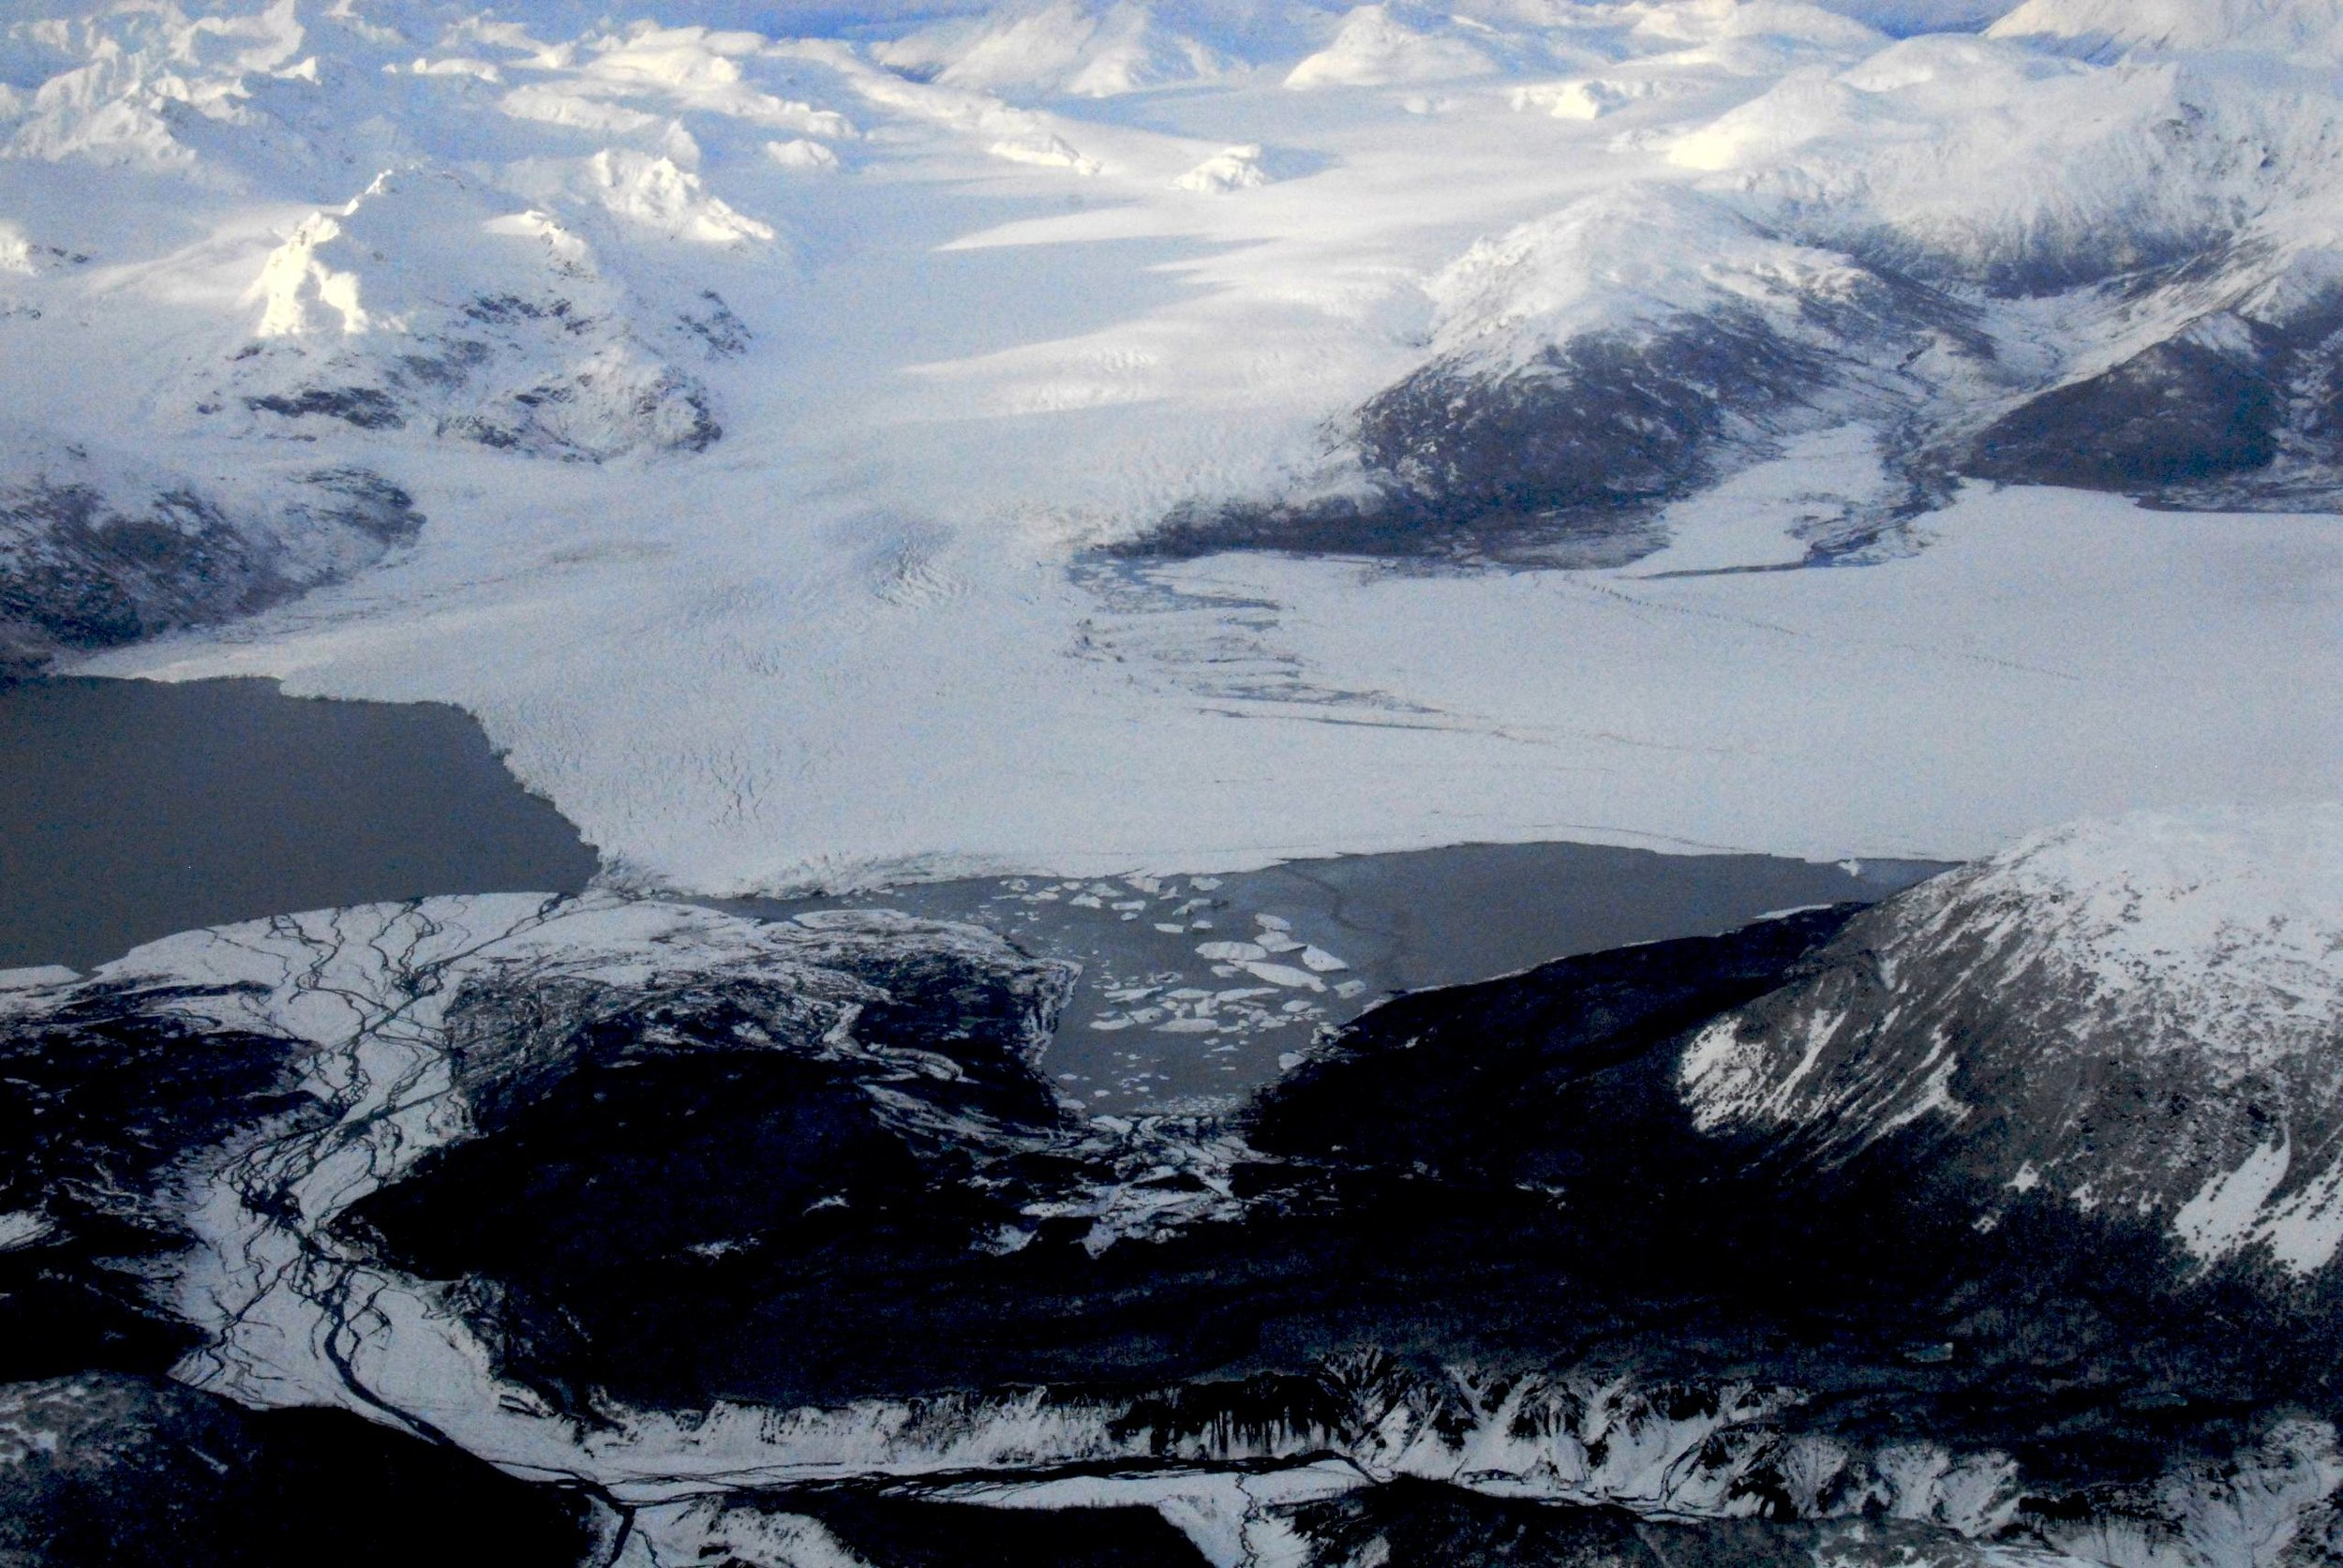 Aerial photo of the glacial terminus by Chris Larsen